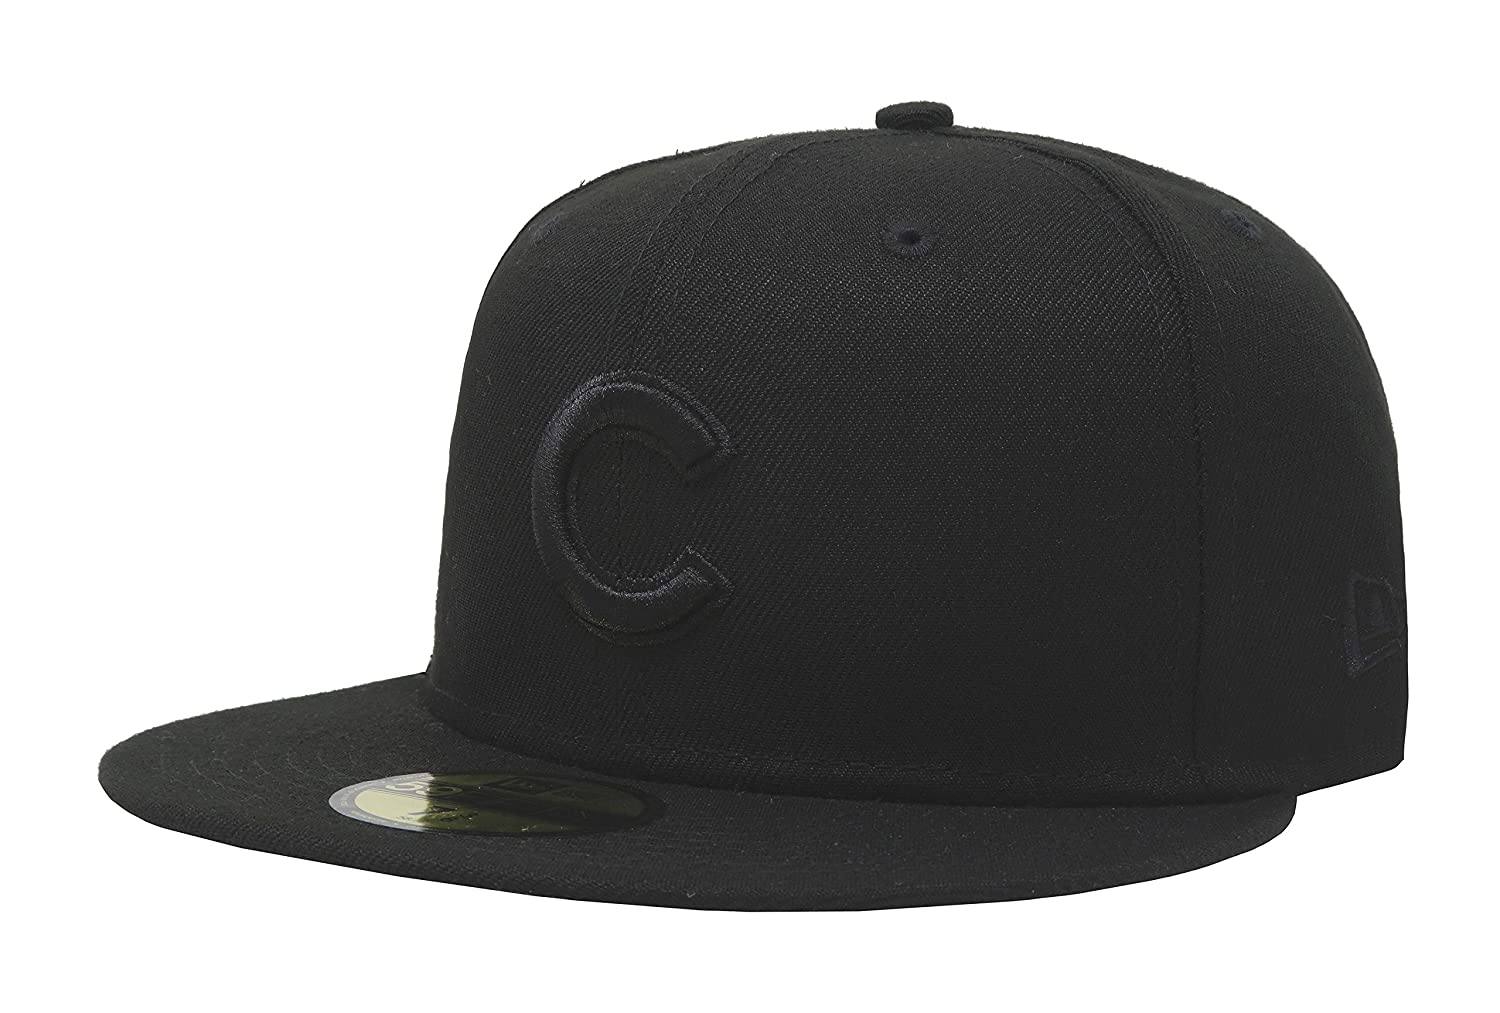 04185d7c0b9 New Era 59Fifty Hat MLB Basic Chicago Cubs Black Black Fitted Baseball Cap  at Amazon Men s Clothing store